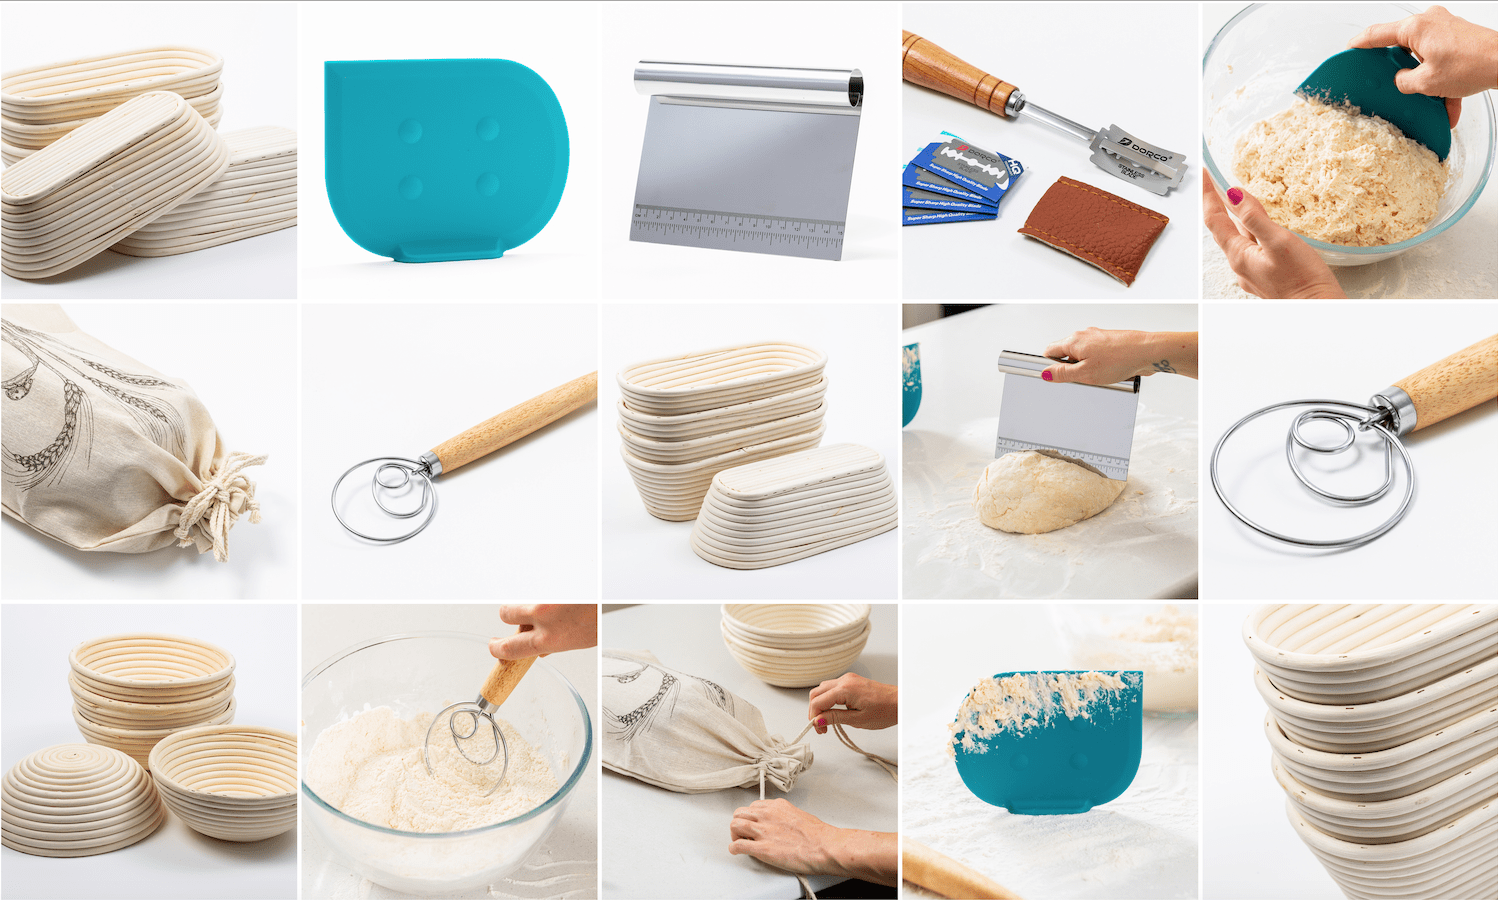 bread proofing basket and other baking tools